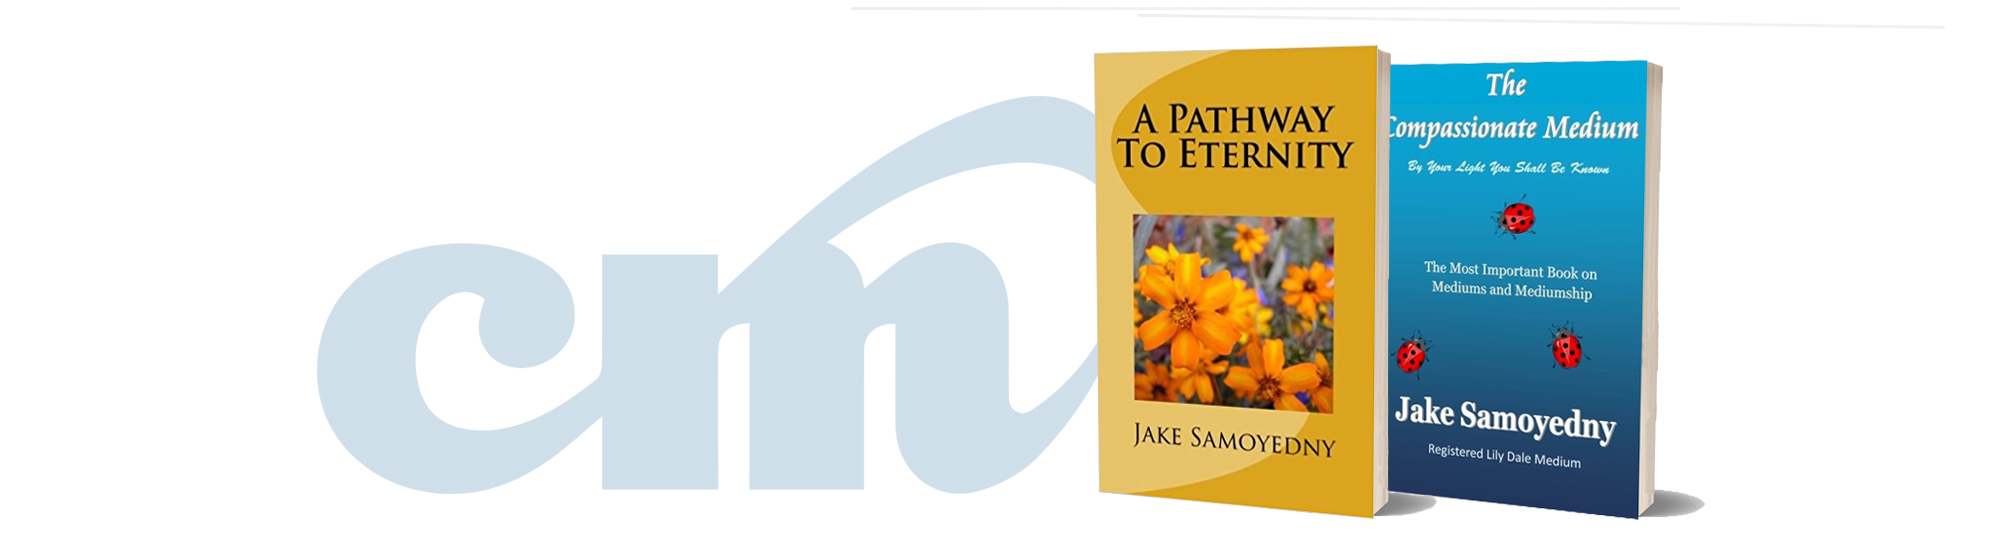 Jake Samoyedny The Compassionate Medium